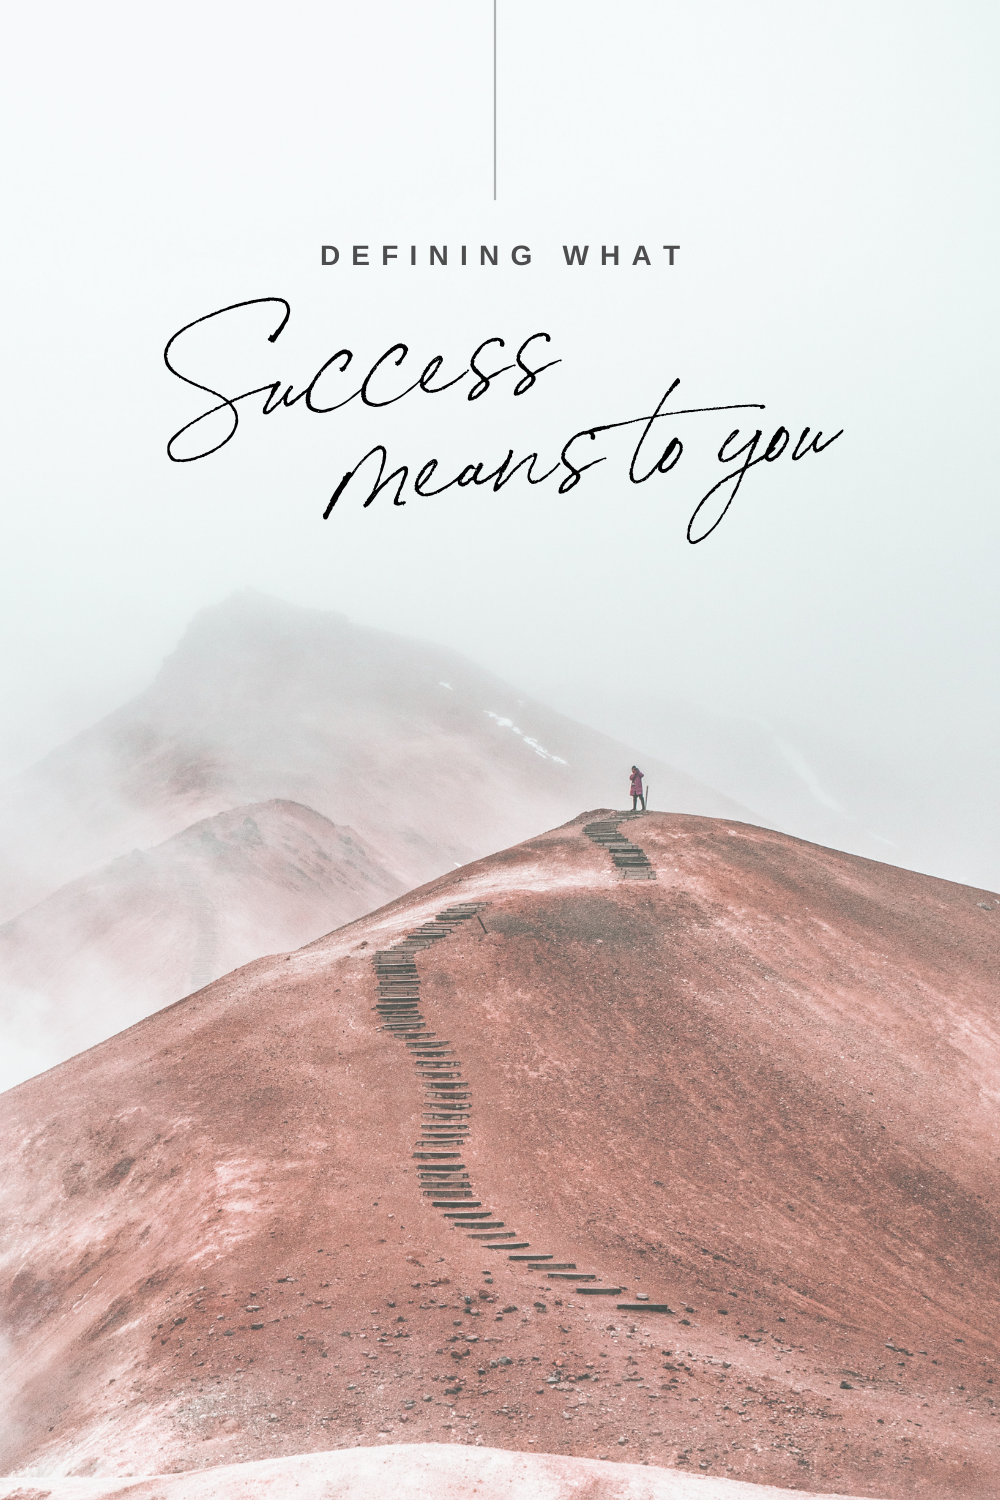 Success means different things to different people.  So… what does having a successful business look like to YOU? #success #onlineentrepreneur #onlinebusiness #womeninbusiness #coach #coaching #coaches #coachingbusiness #smallbiztips #smallbusiness #inspiration #businessowner #entrepreneur #solopreneur #soulpreneur